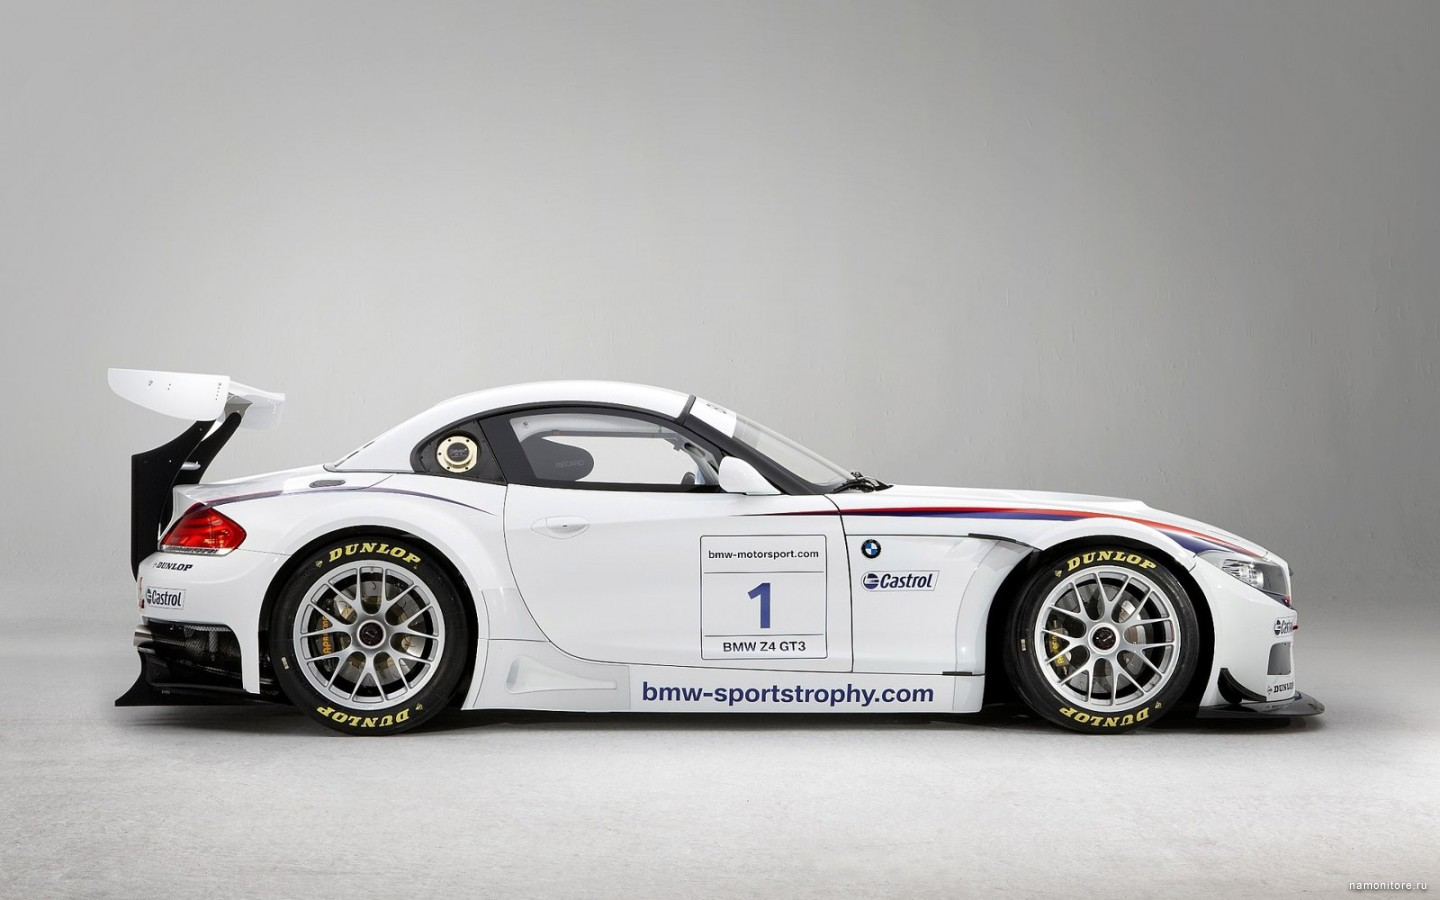 BMW Z4 GT3, best, BMW, cars, clipart, technics, white 1440x900.